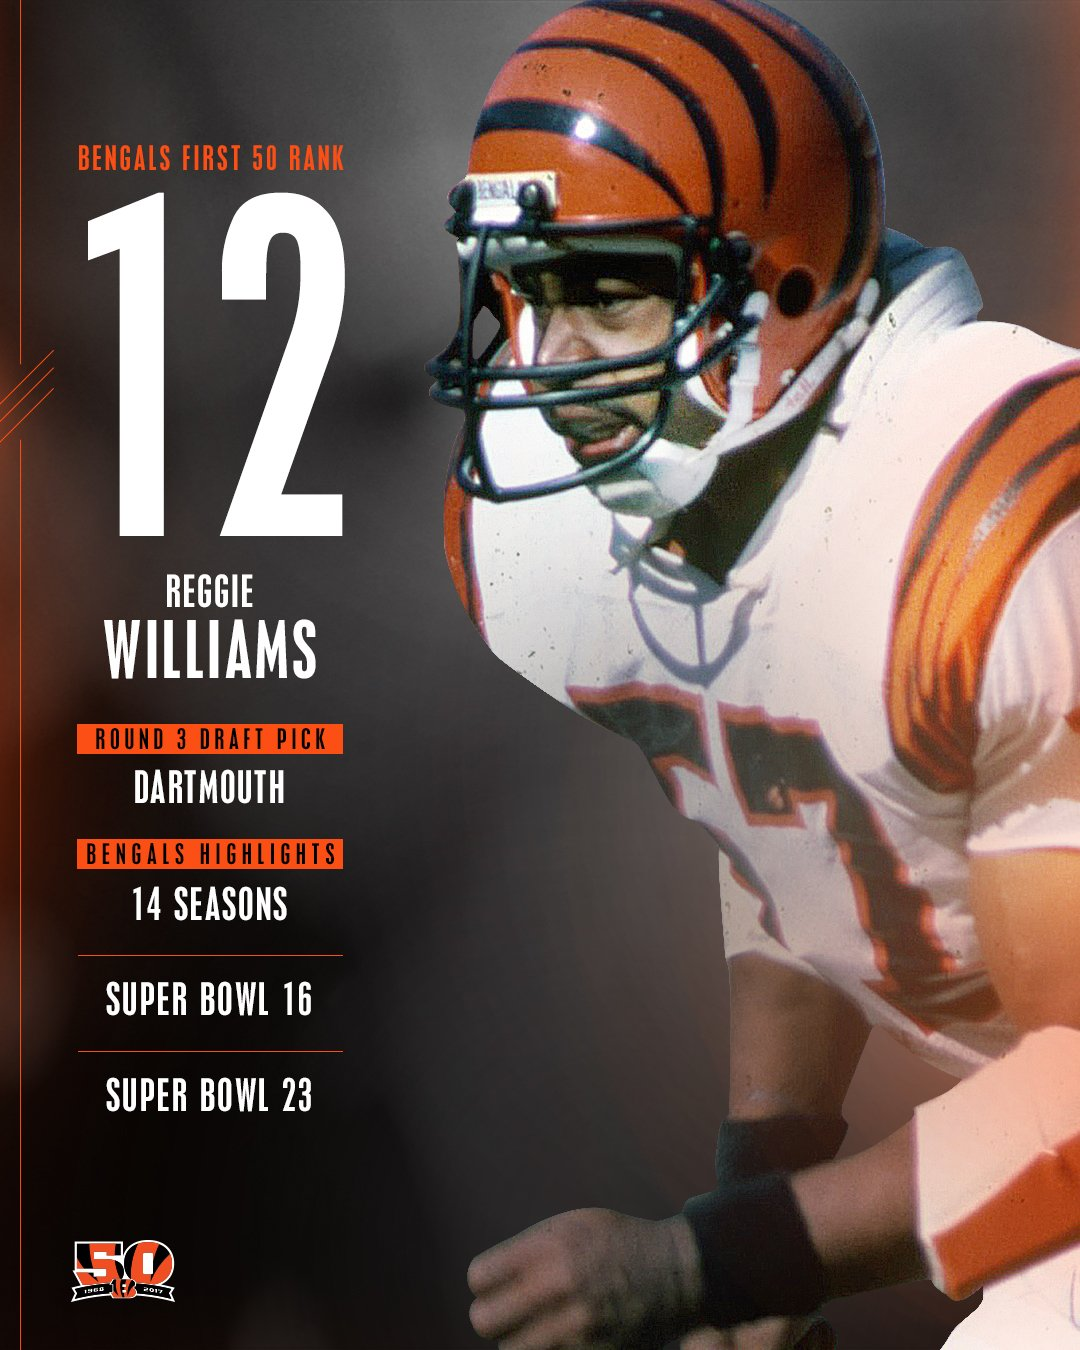 12 days until the first game of our 50th Season!  Number 12 on the #Bengals First 50: Reggie Williams  #Bengals50 https://t.co/AUcuyfr9Xi